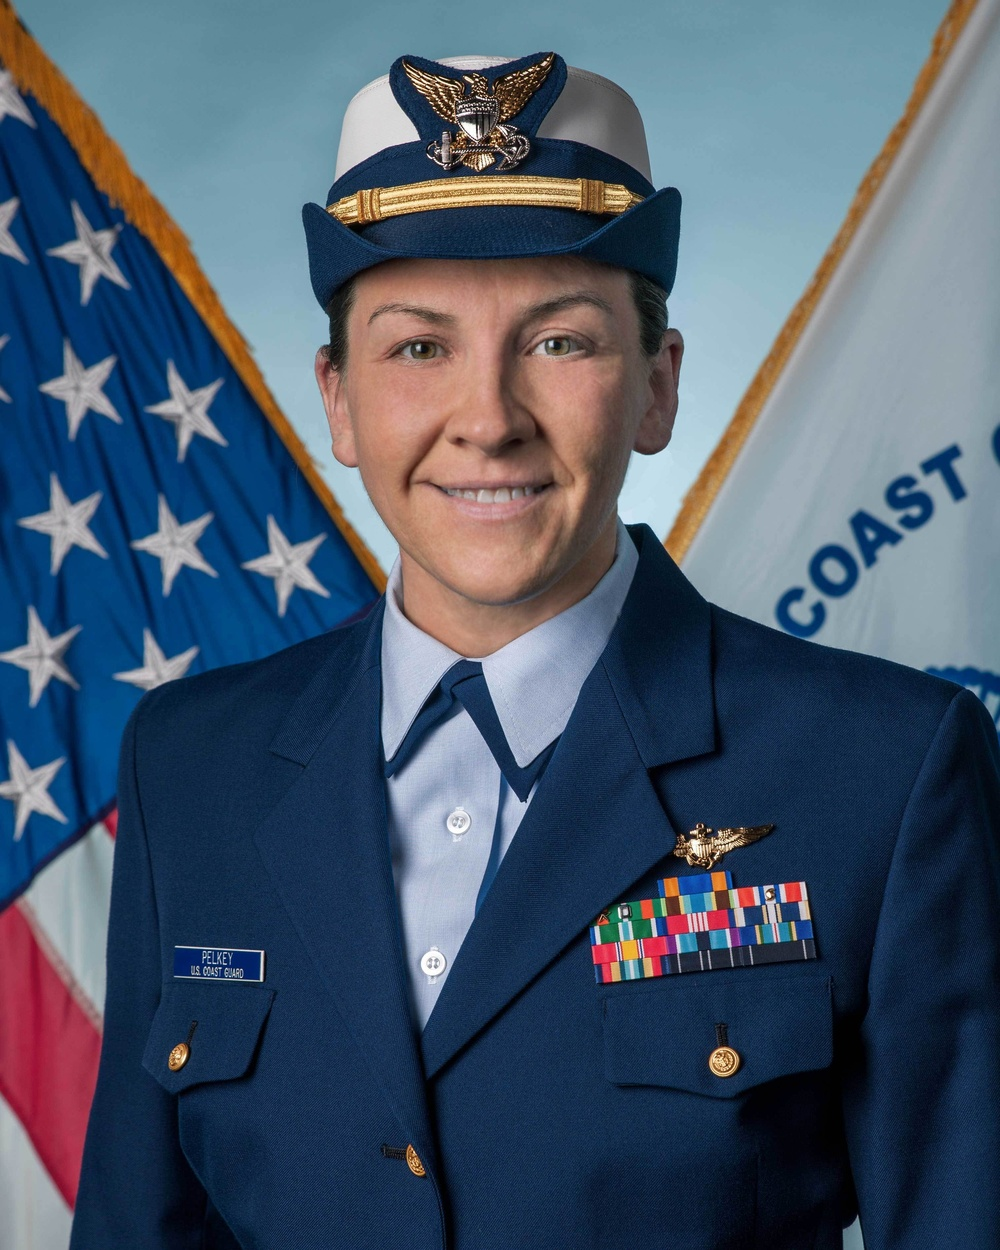 Service Member on a Mission to Inspire and Empower